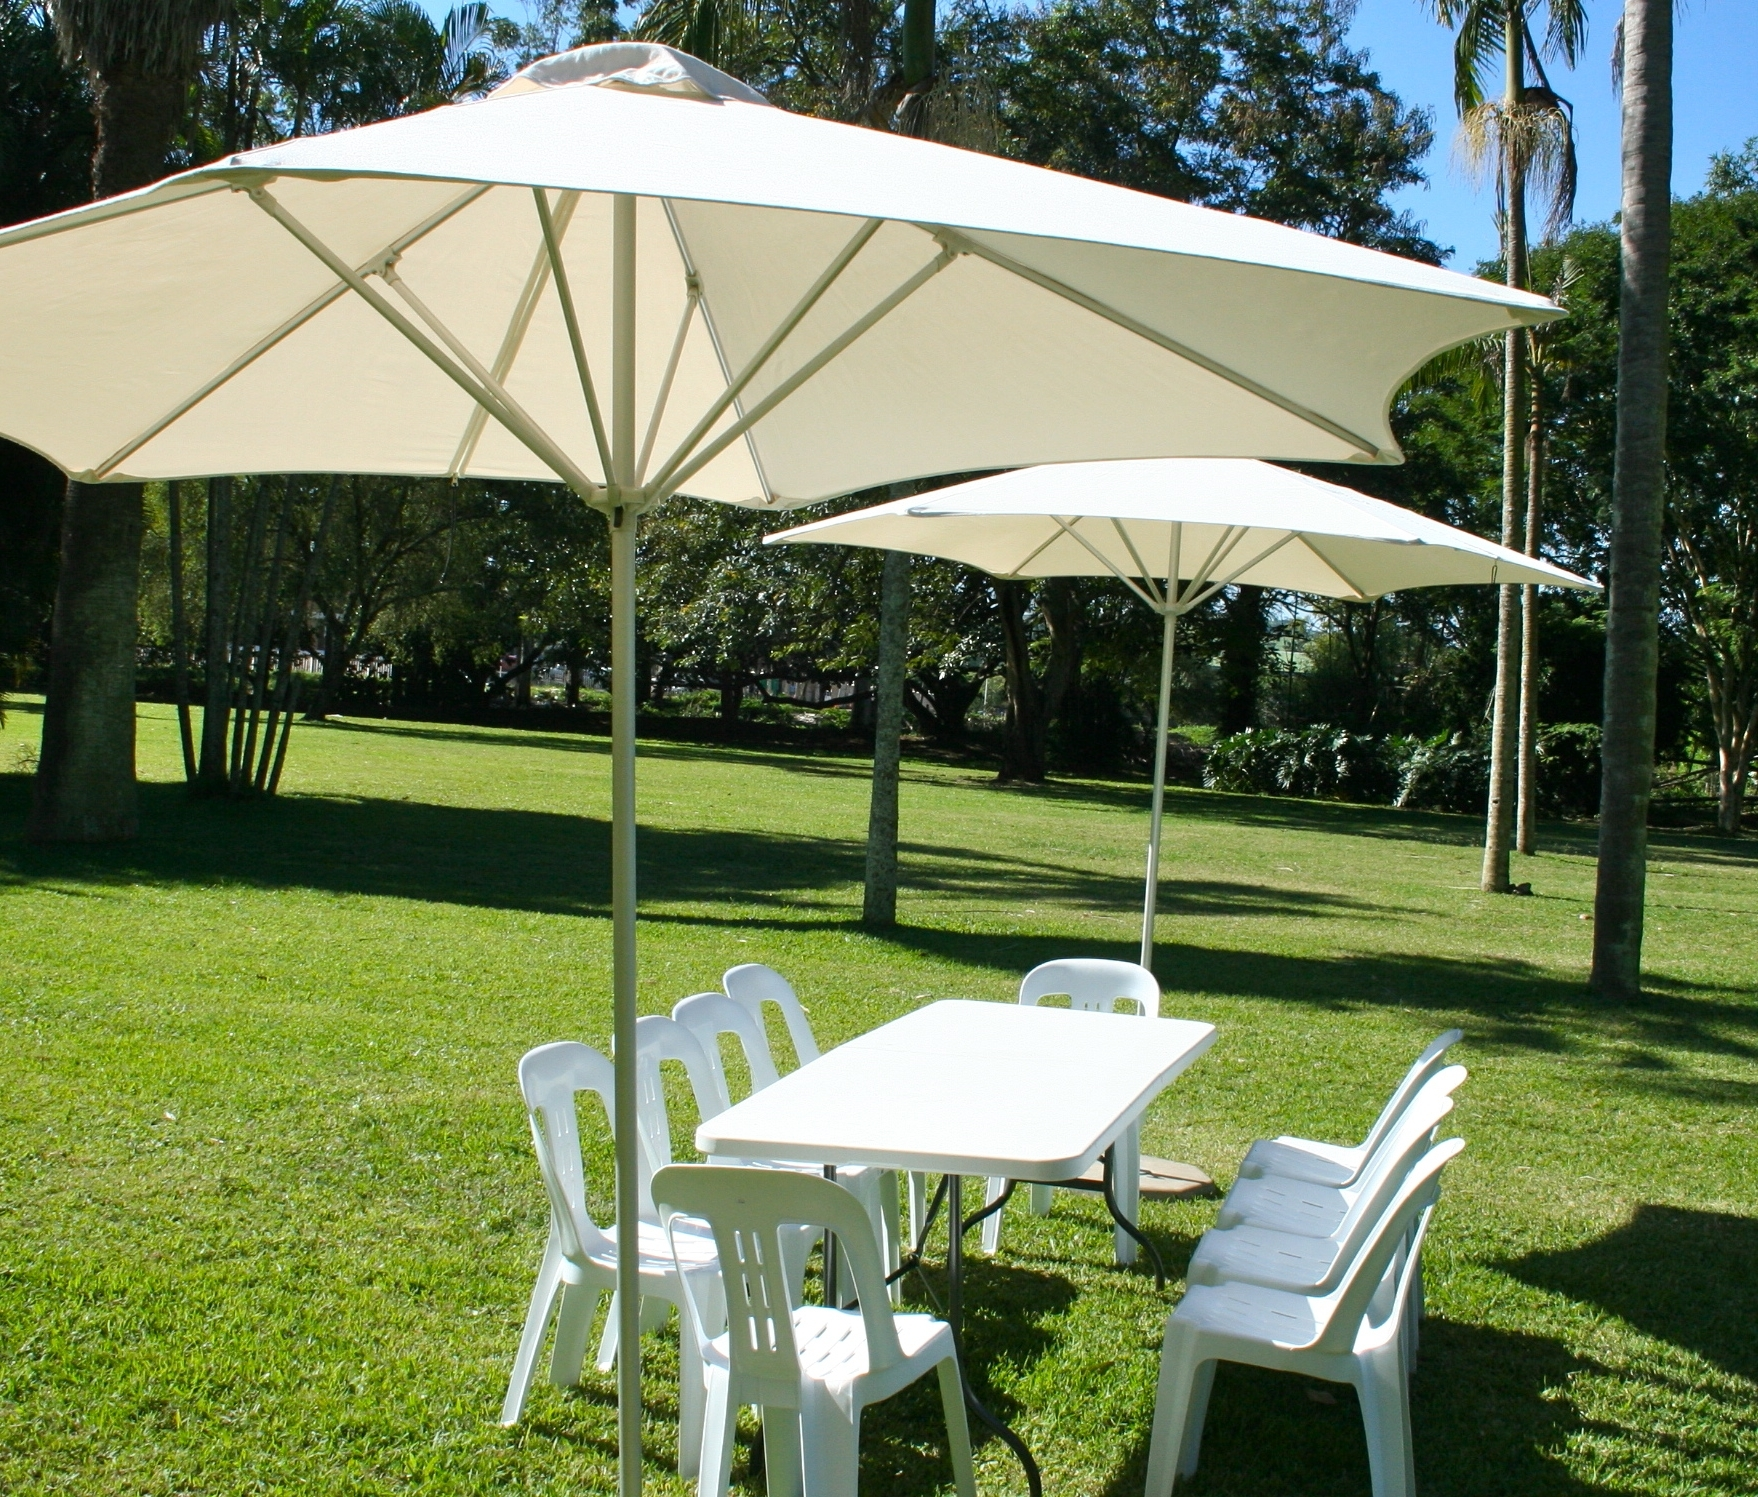 Widely Used Patio Umbrellas For Rent Within Outdoor Patio Umbrella – Rental Umbrella Hire (View 20 of 20)